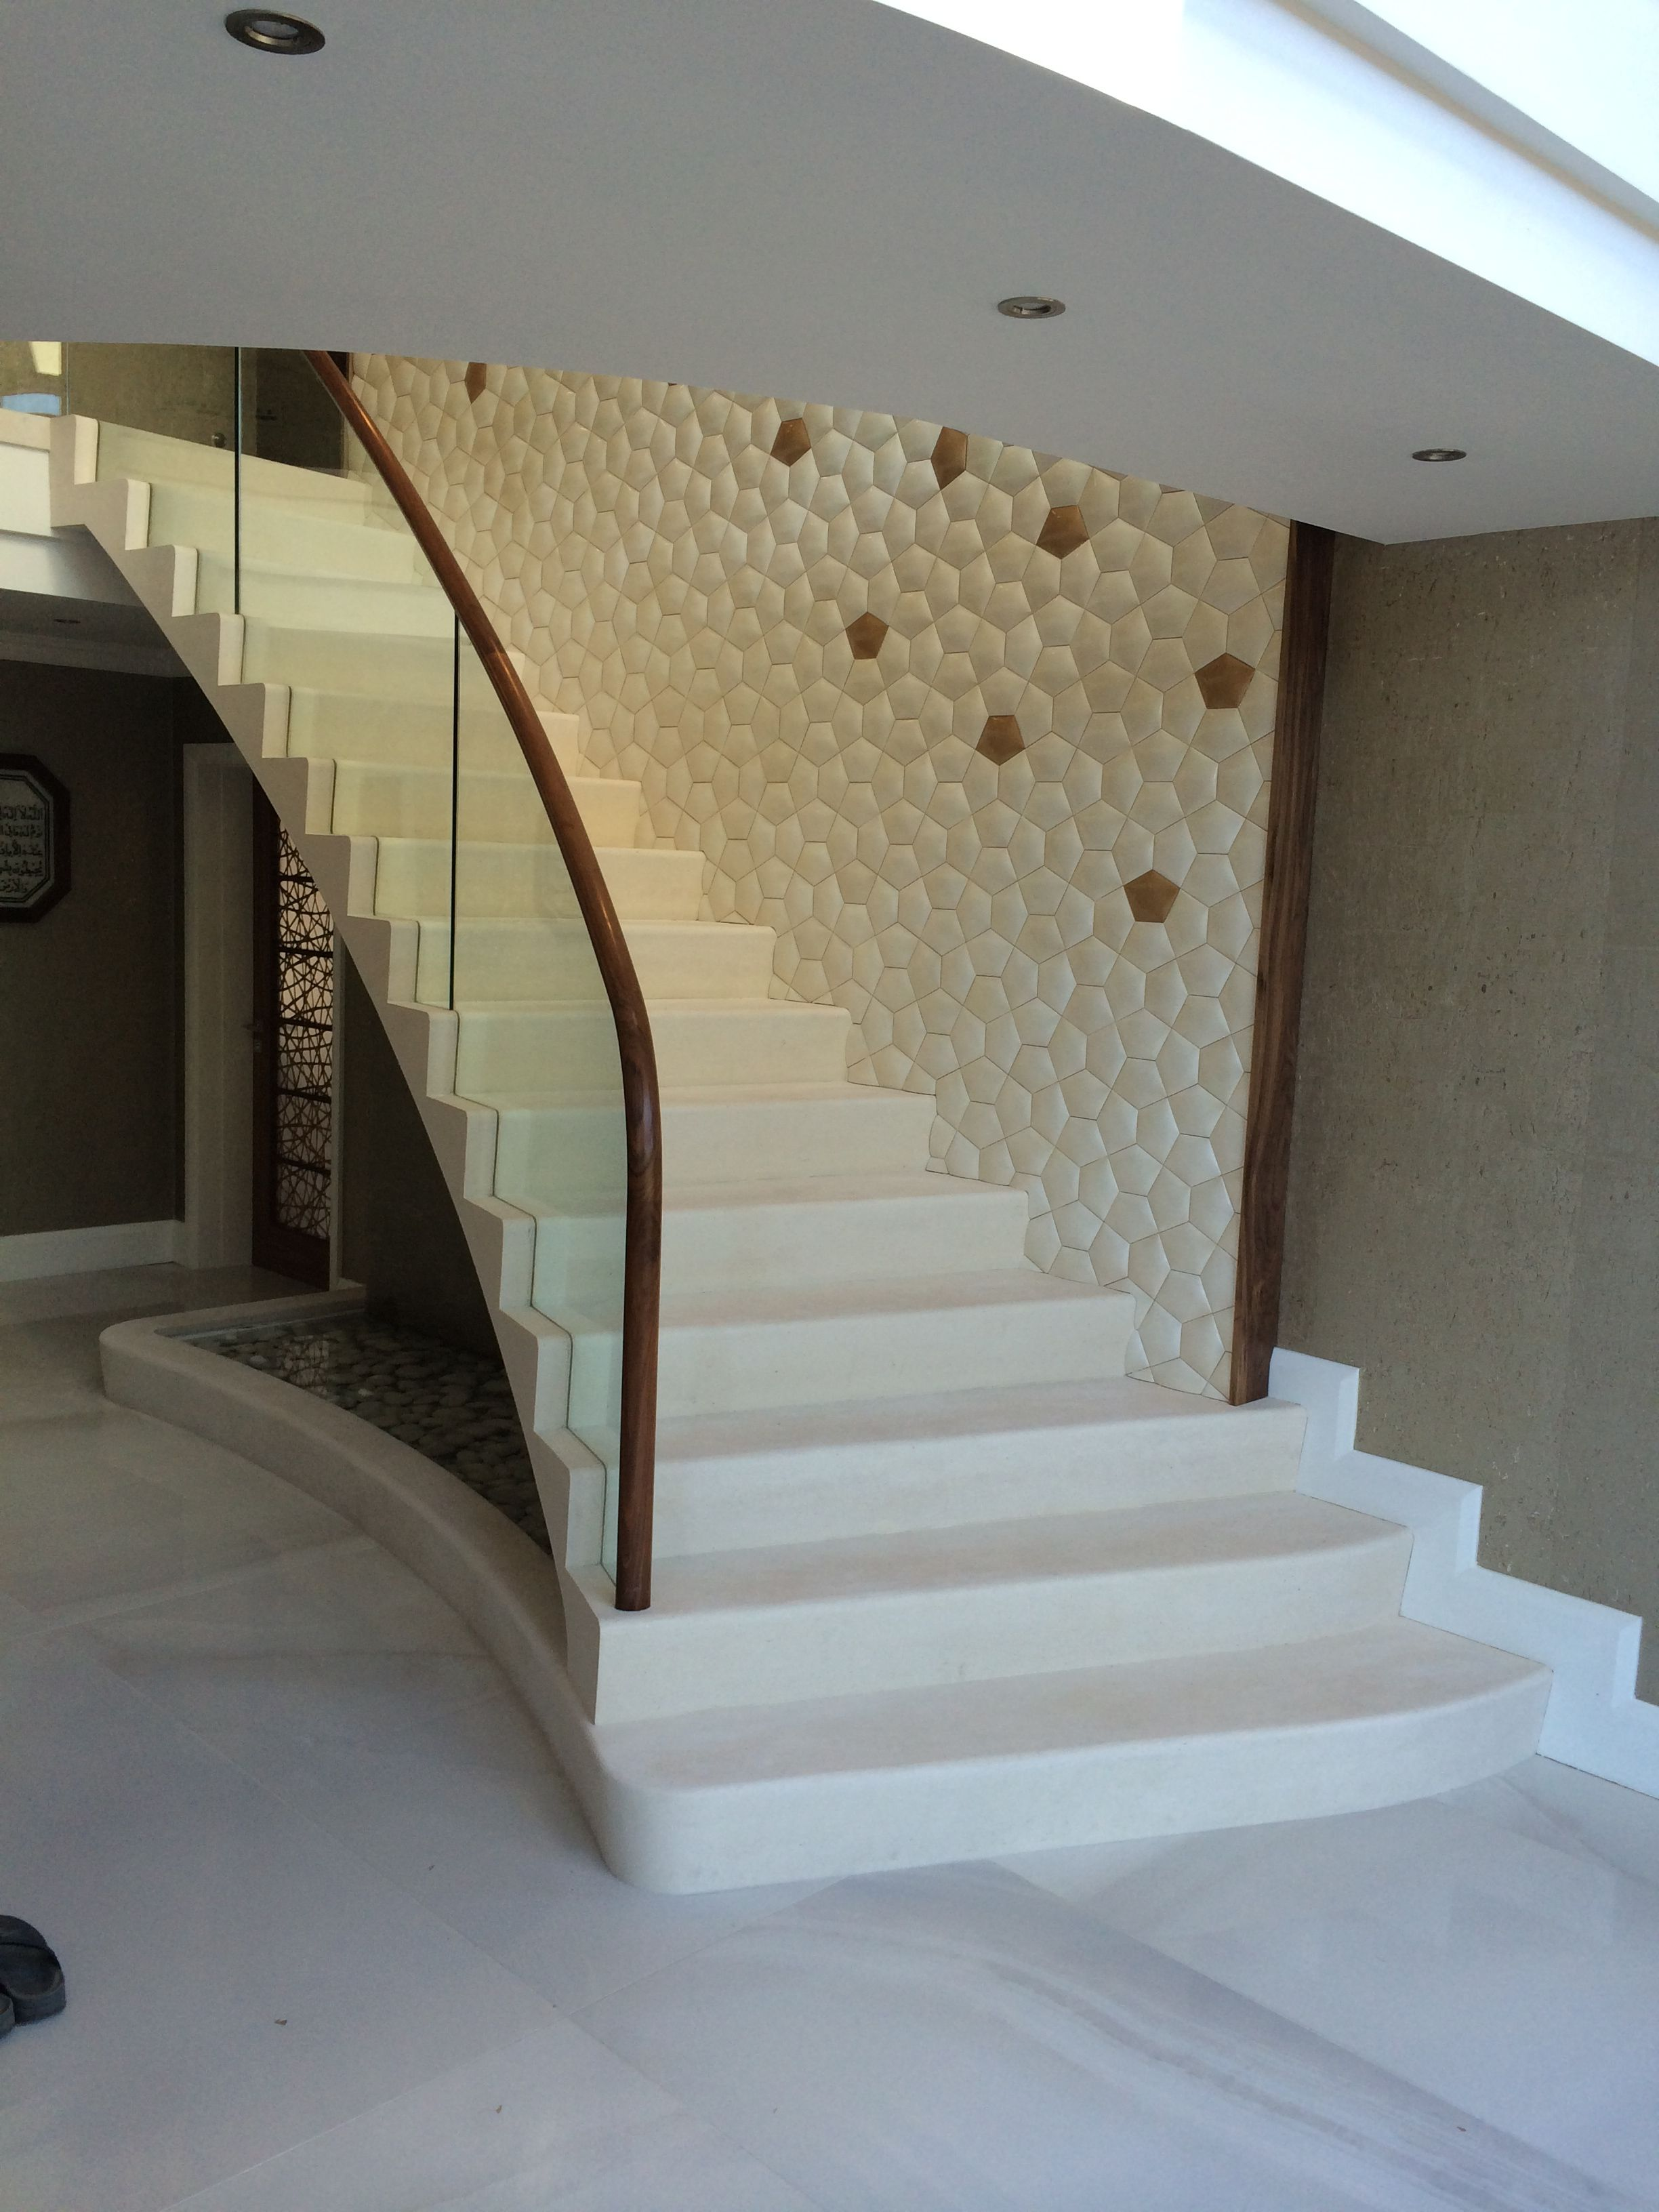 Modern, Contemporary Staircase With Water Feature, Curved Glass Balustrade And